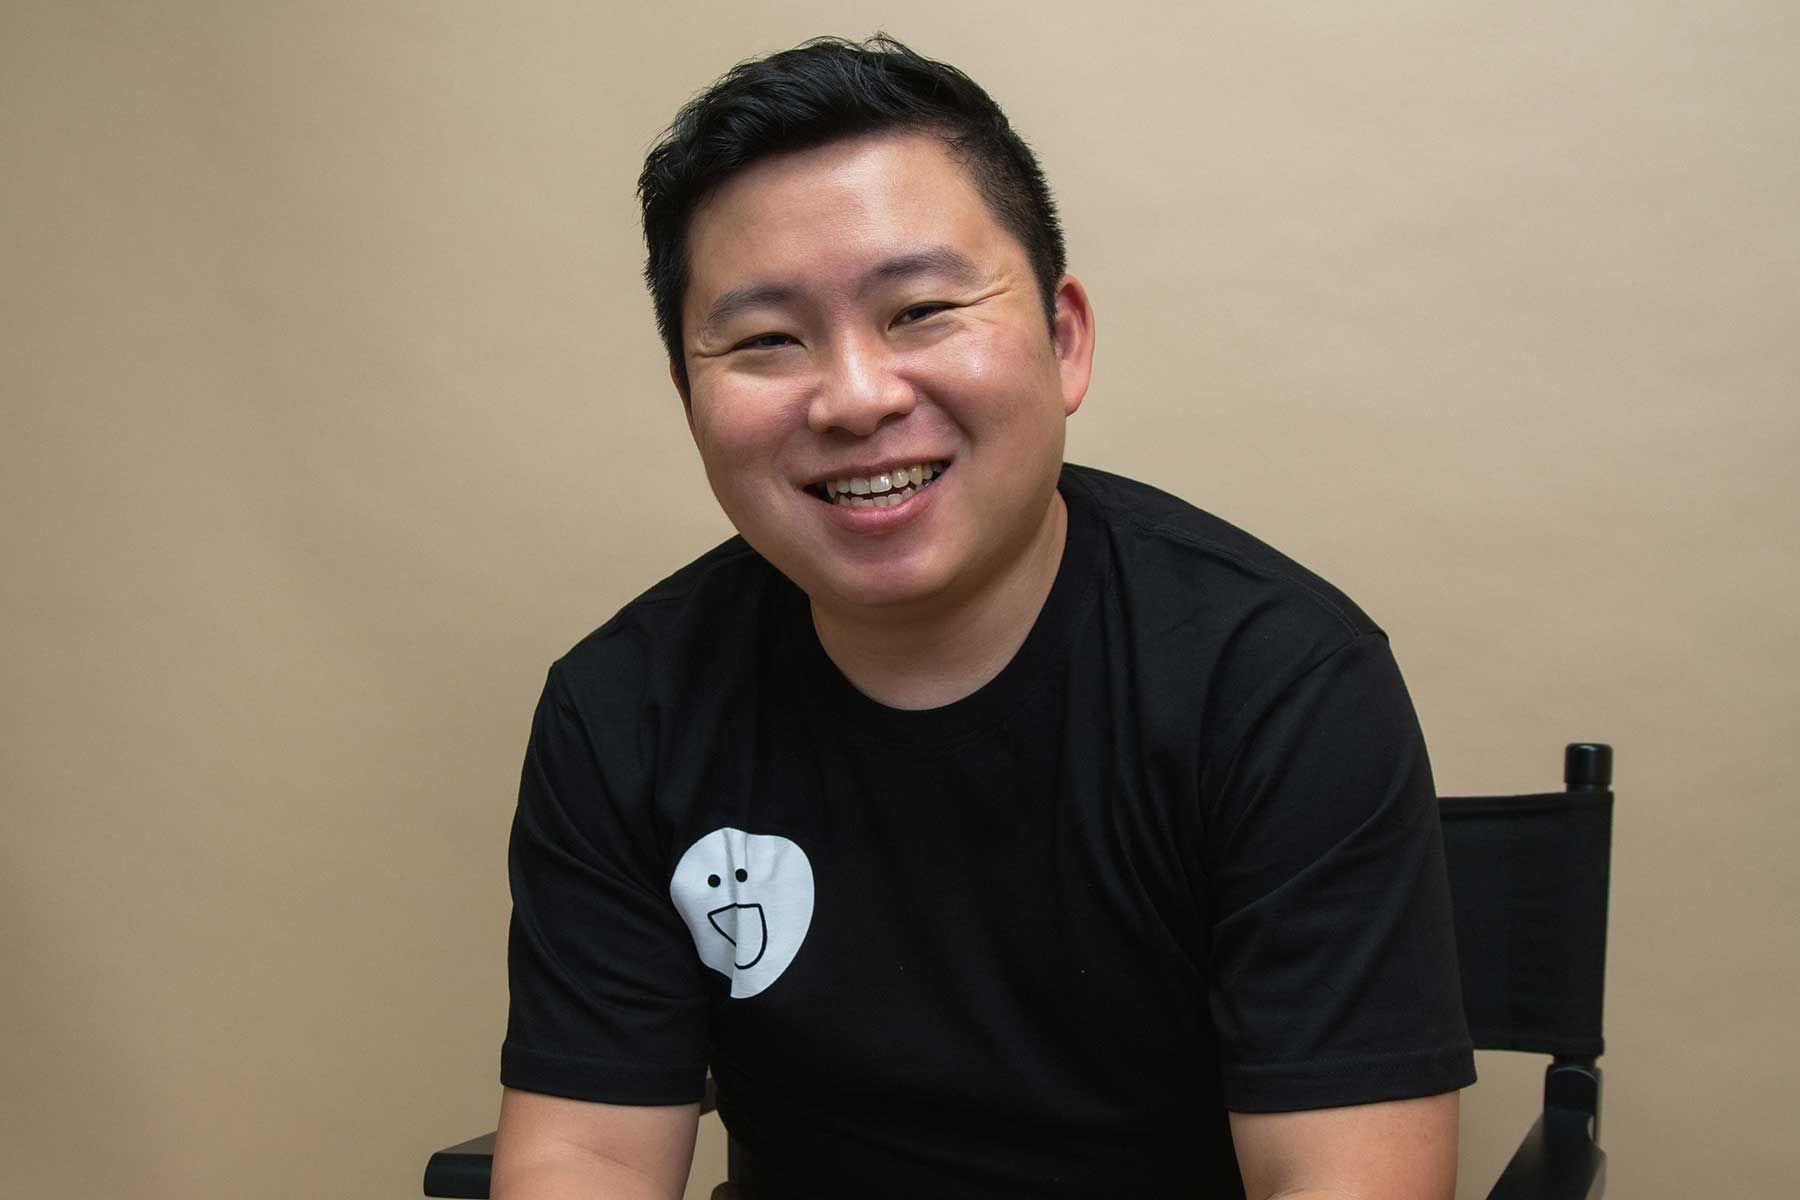 MyBurgerLab Co-Founder Chin Ren Yi On How To Build A Restaurant Empire